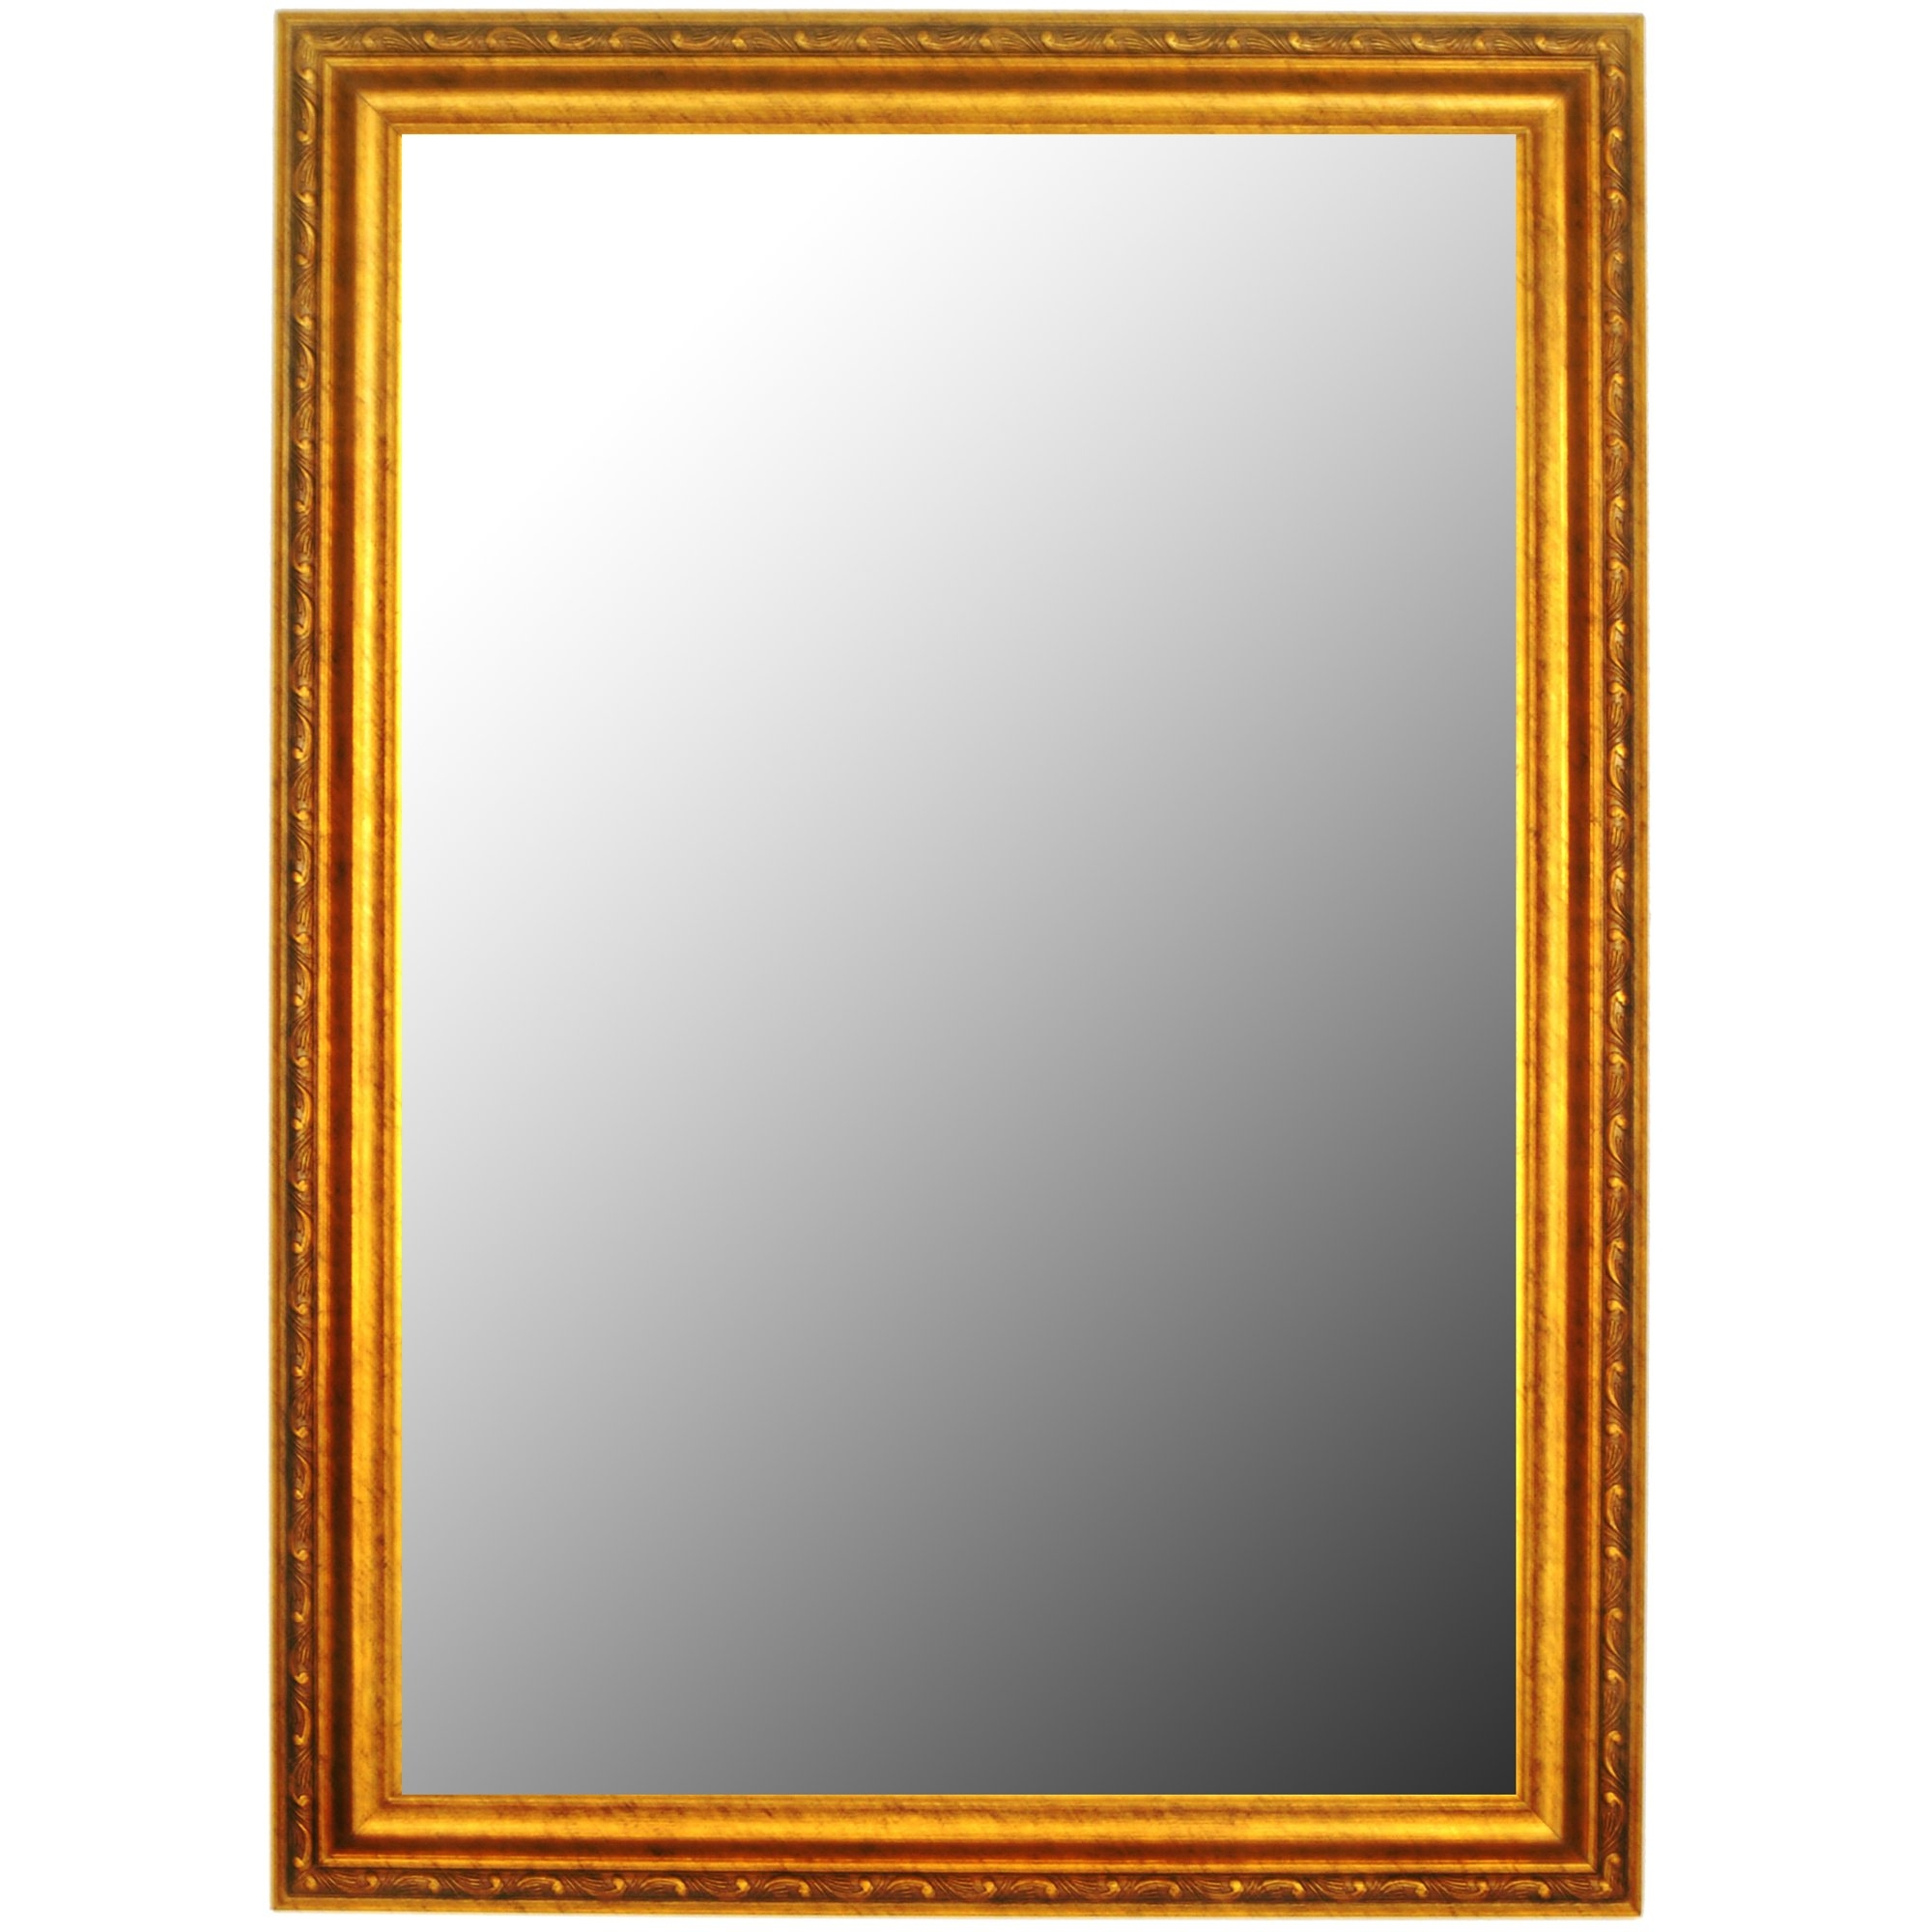 Second Look Mirrors Louis Xii French Gold Wall Mirror Reviews With French Gold Mirror (Image 14 of 15)